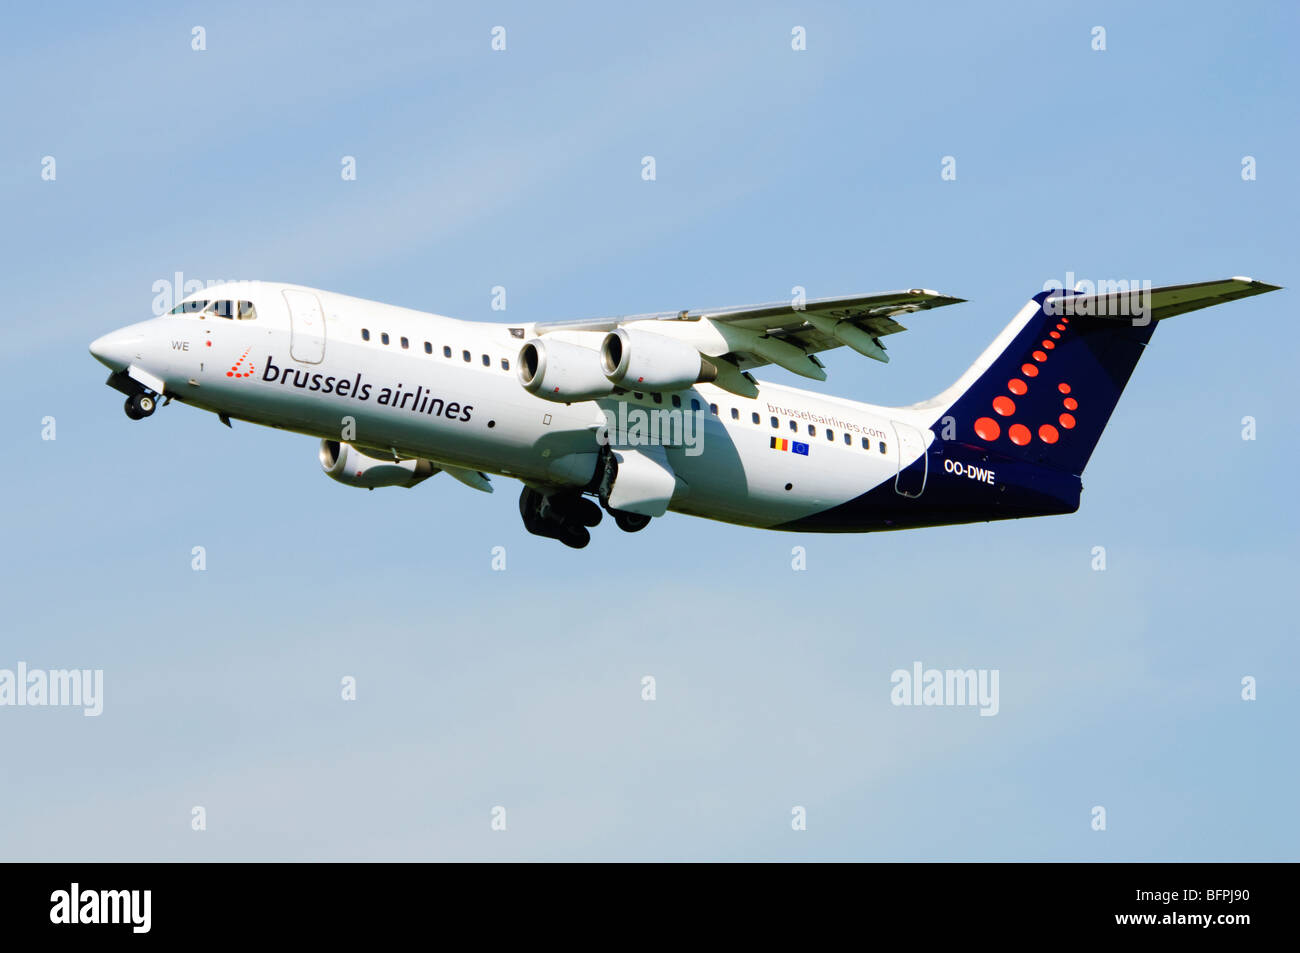 Avro RJ100 operated by Brussels Airlines climbing out from taking off at Birmingham Airport, UK. - Stock Image